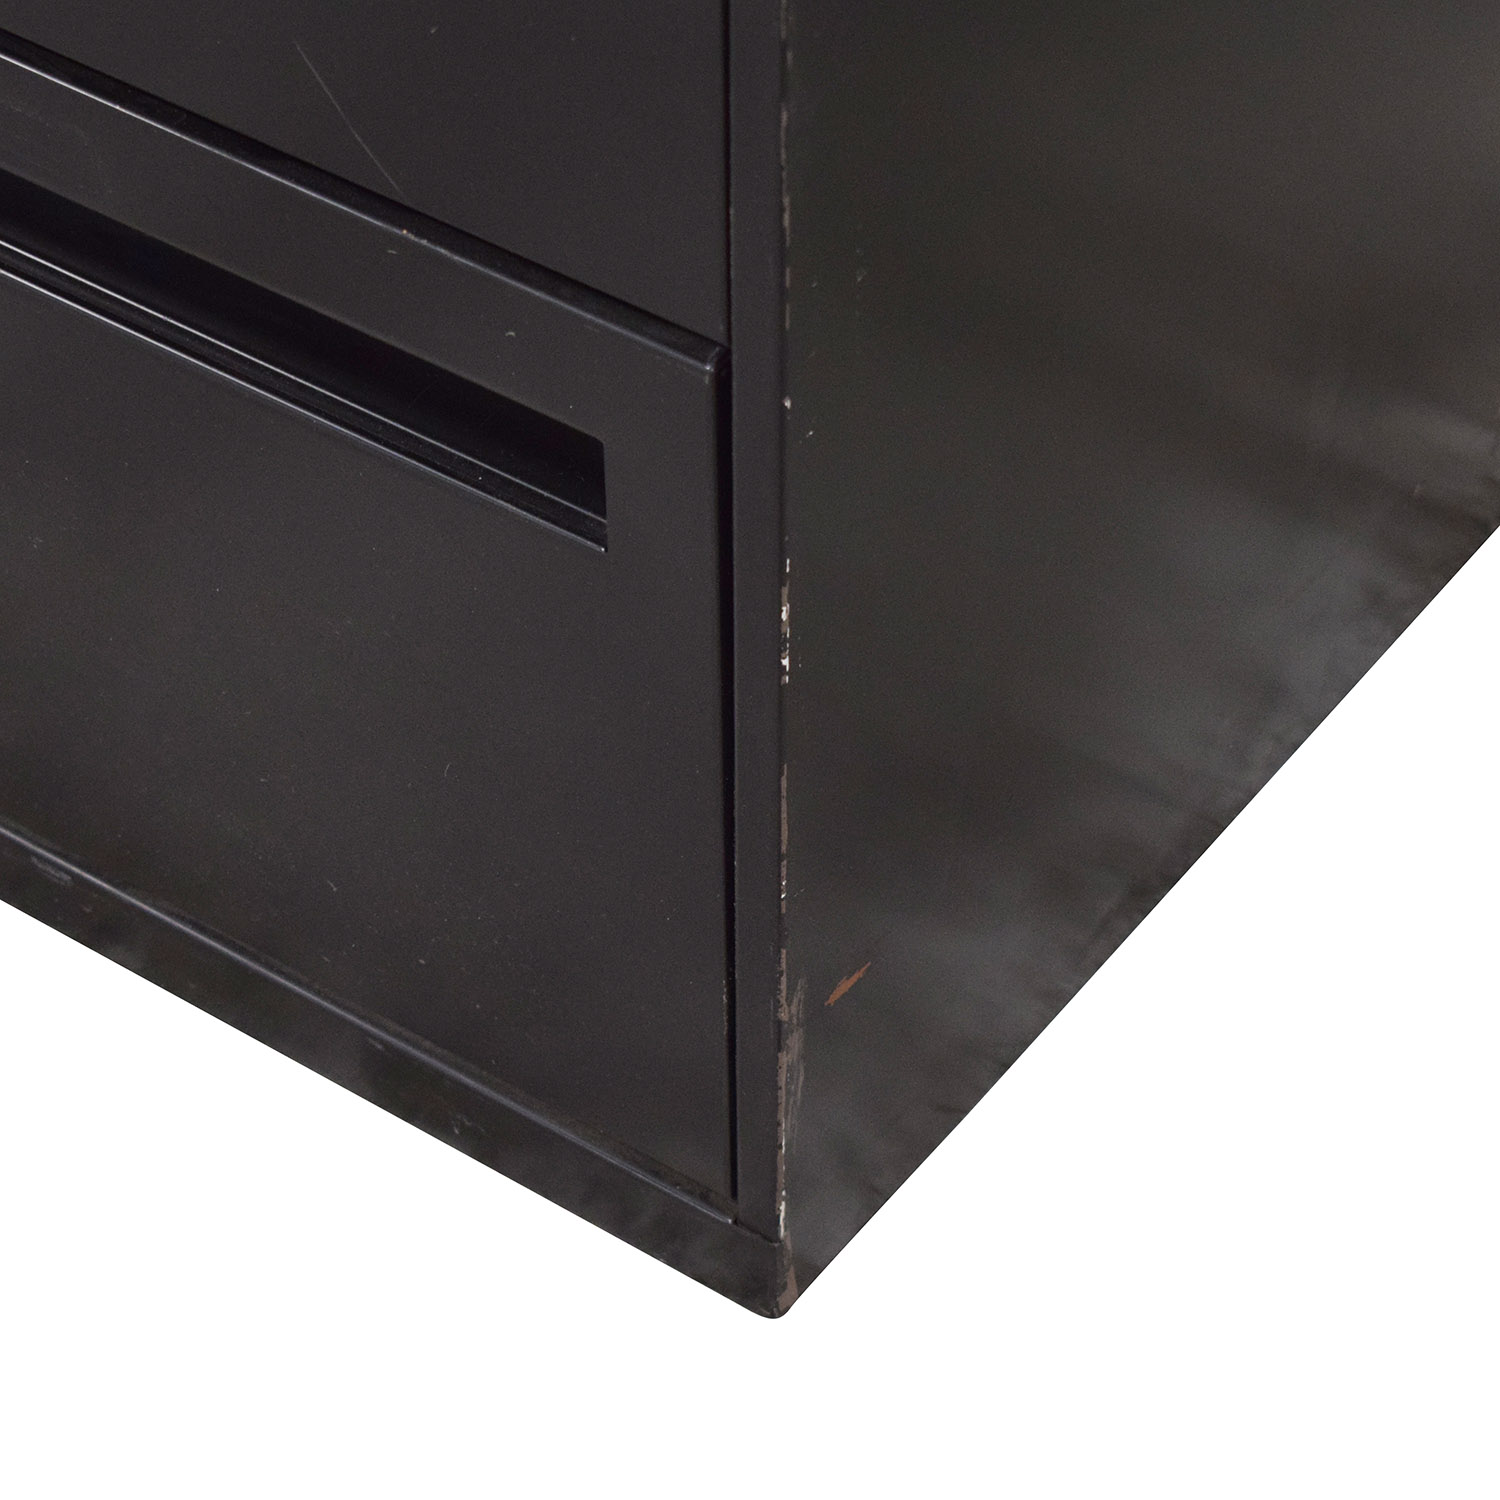 Hon HON 2-Drawer Lateral File Cabinet used